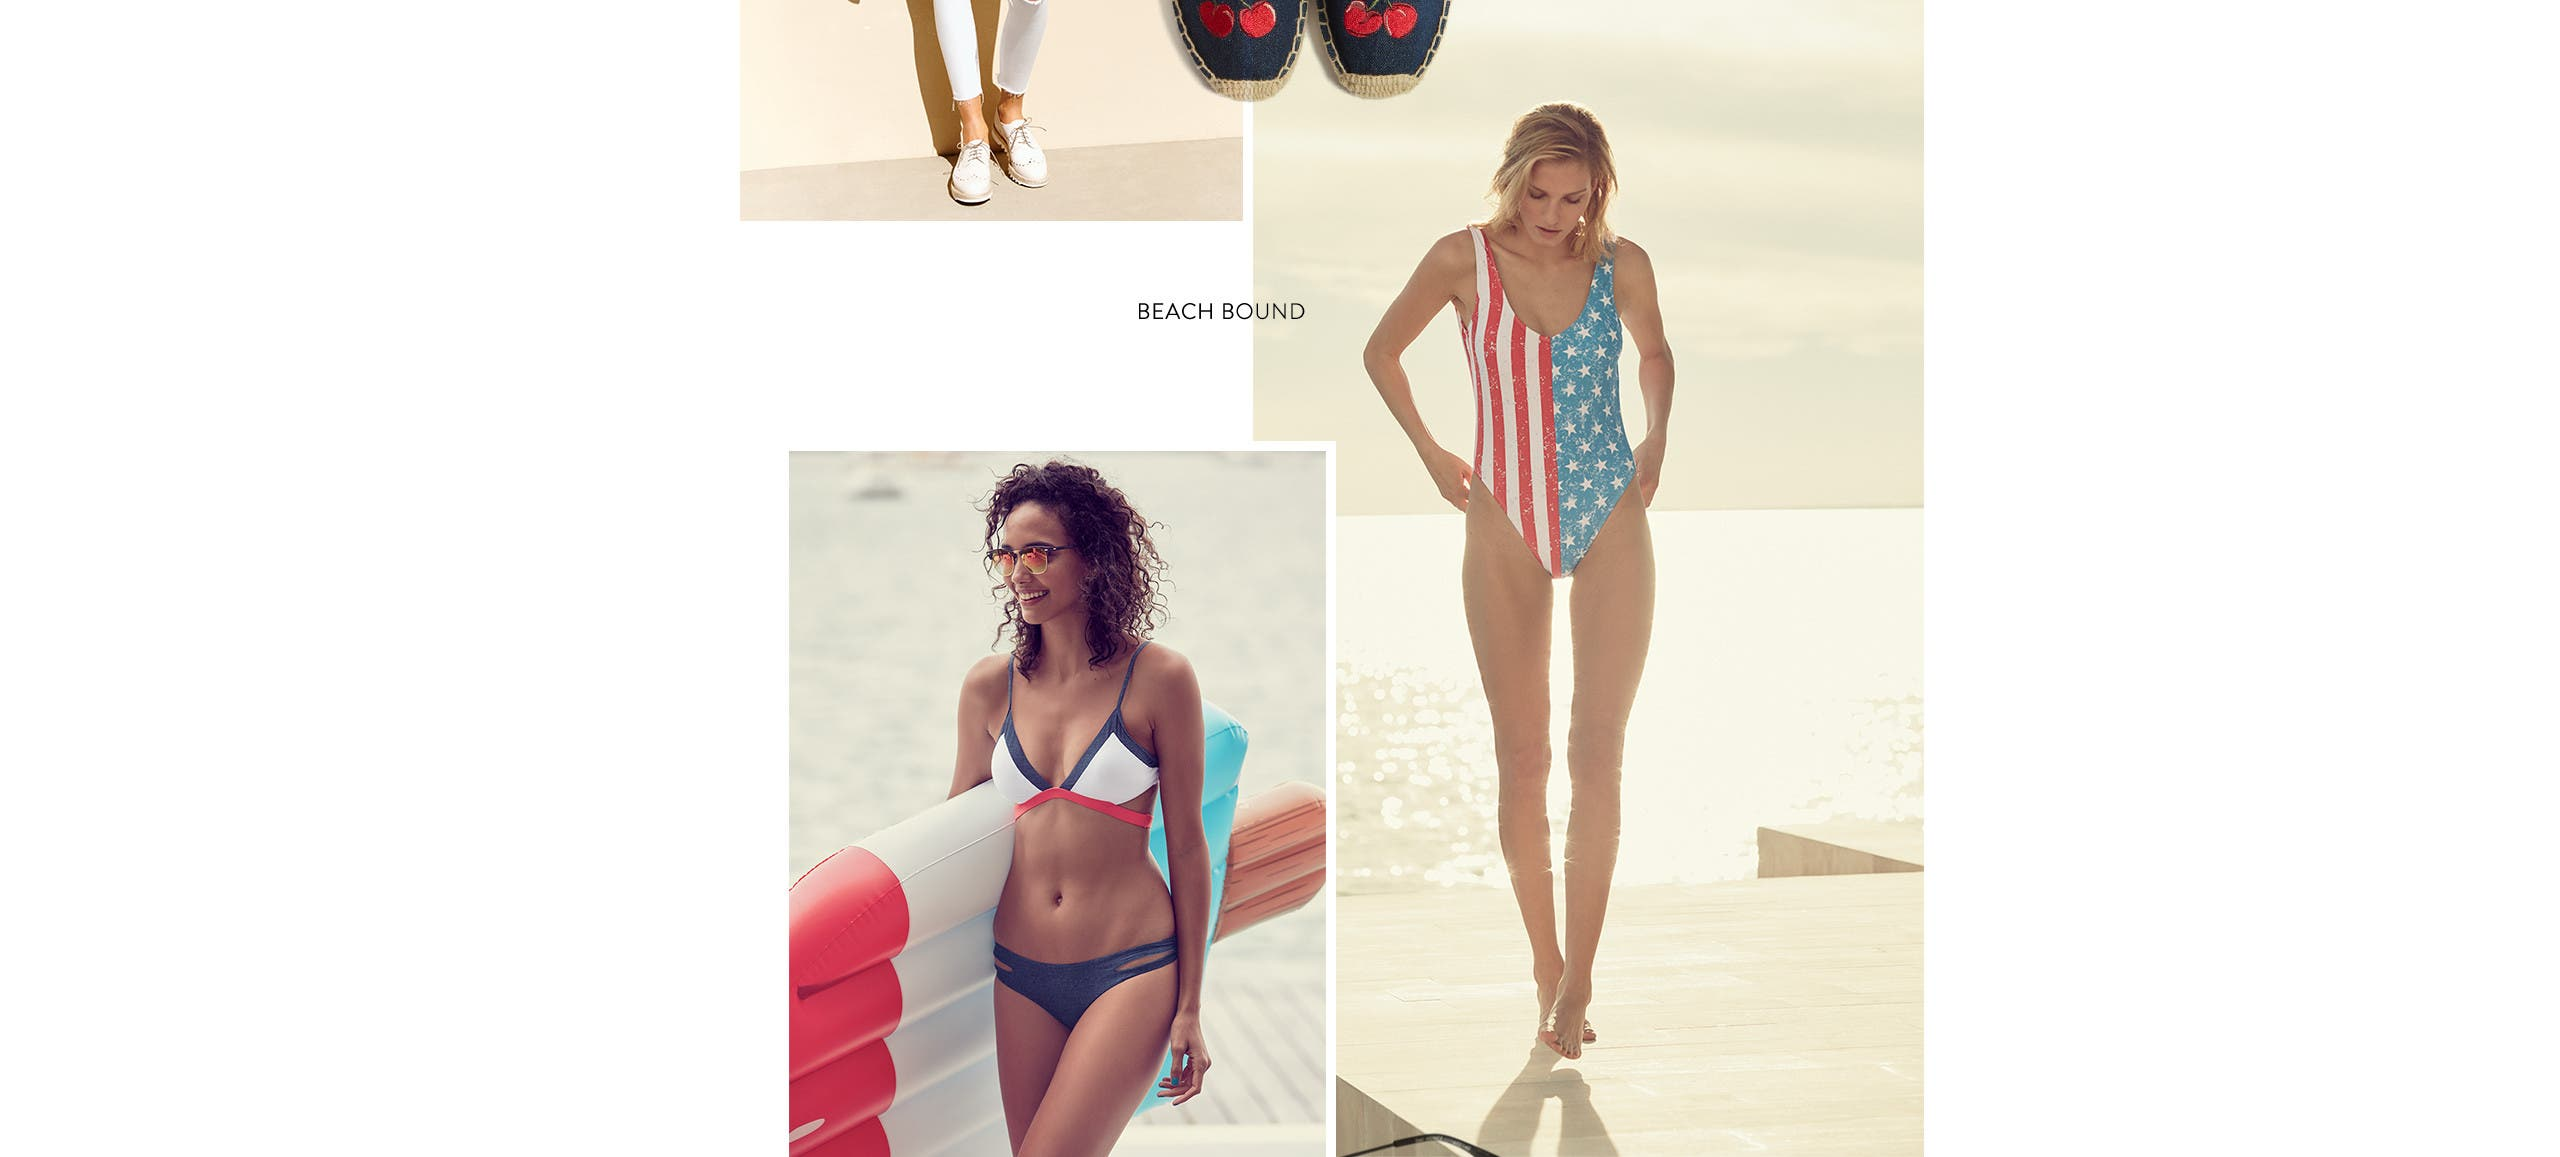 Beach bound in swimsuits and cover-ups.